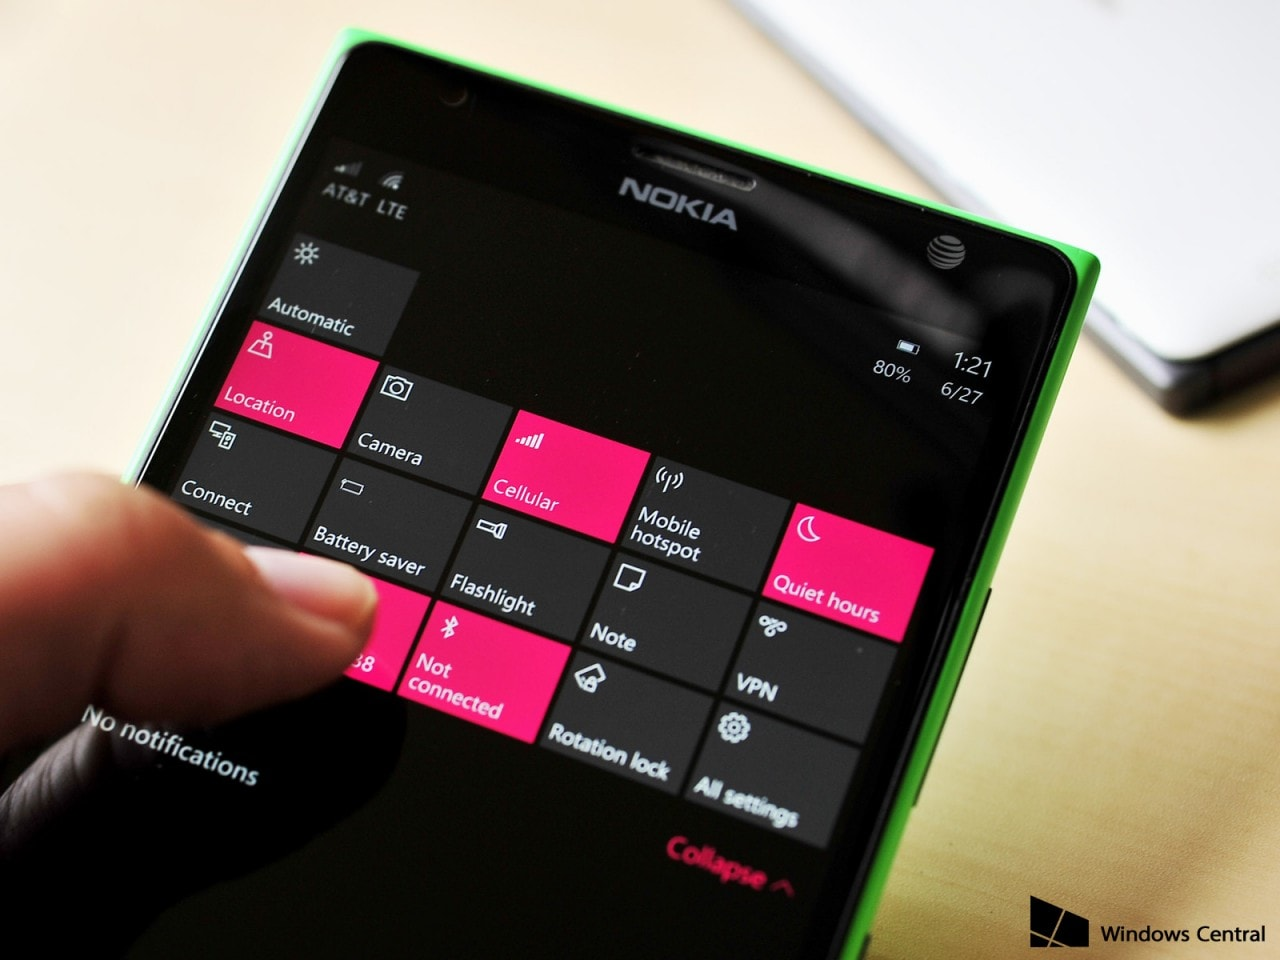 Windows 10 Mobile - quick actions